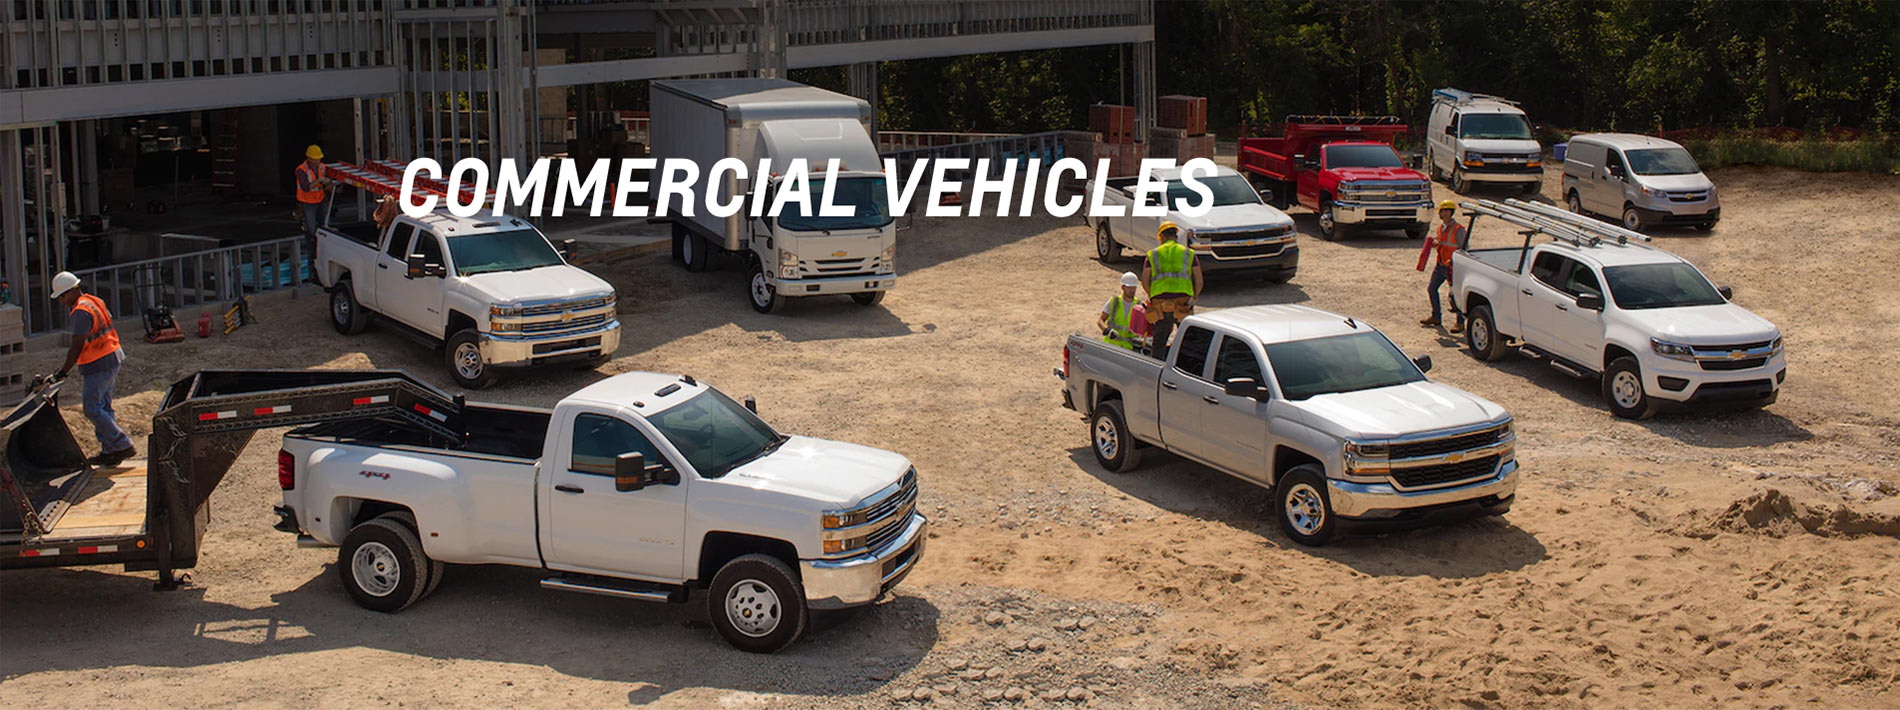 Chevy Commercial Vehicle Banner